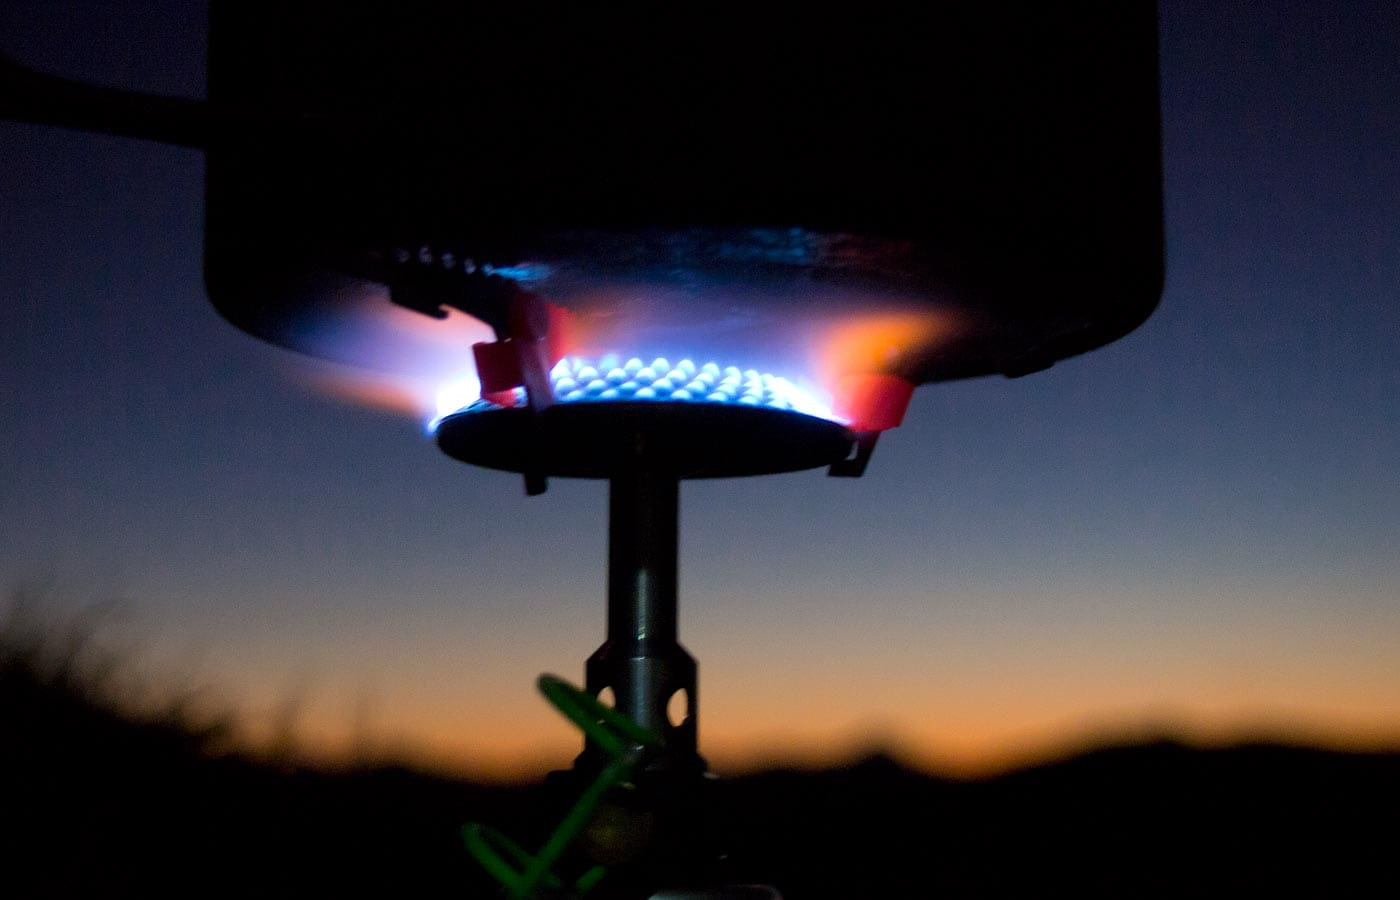 Cooking stove for backpackers